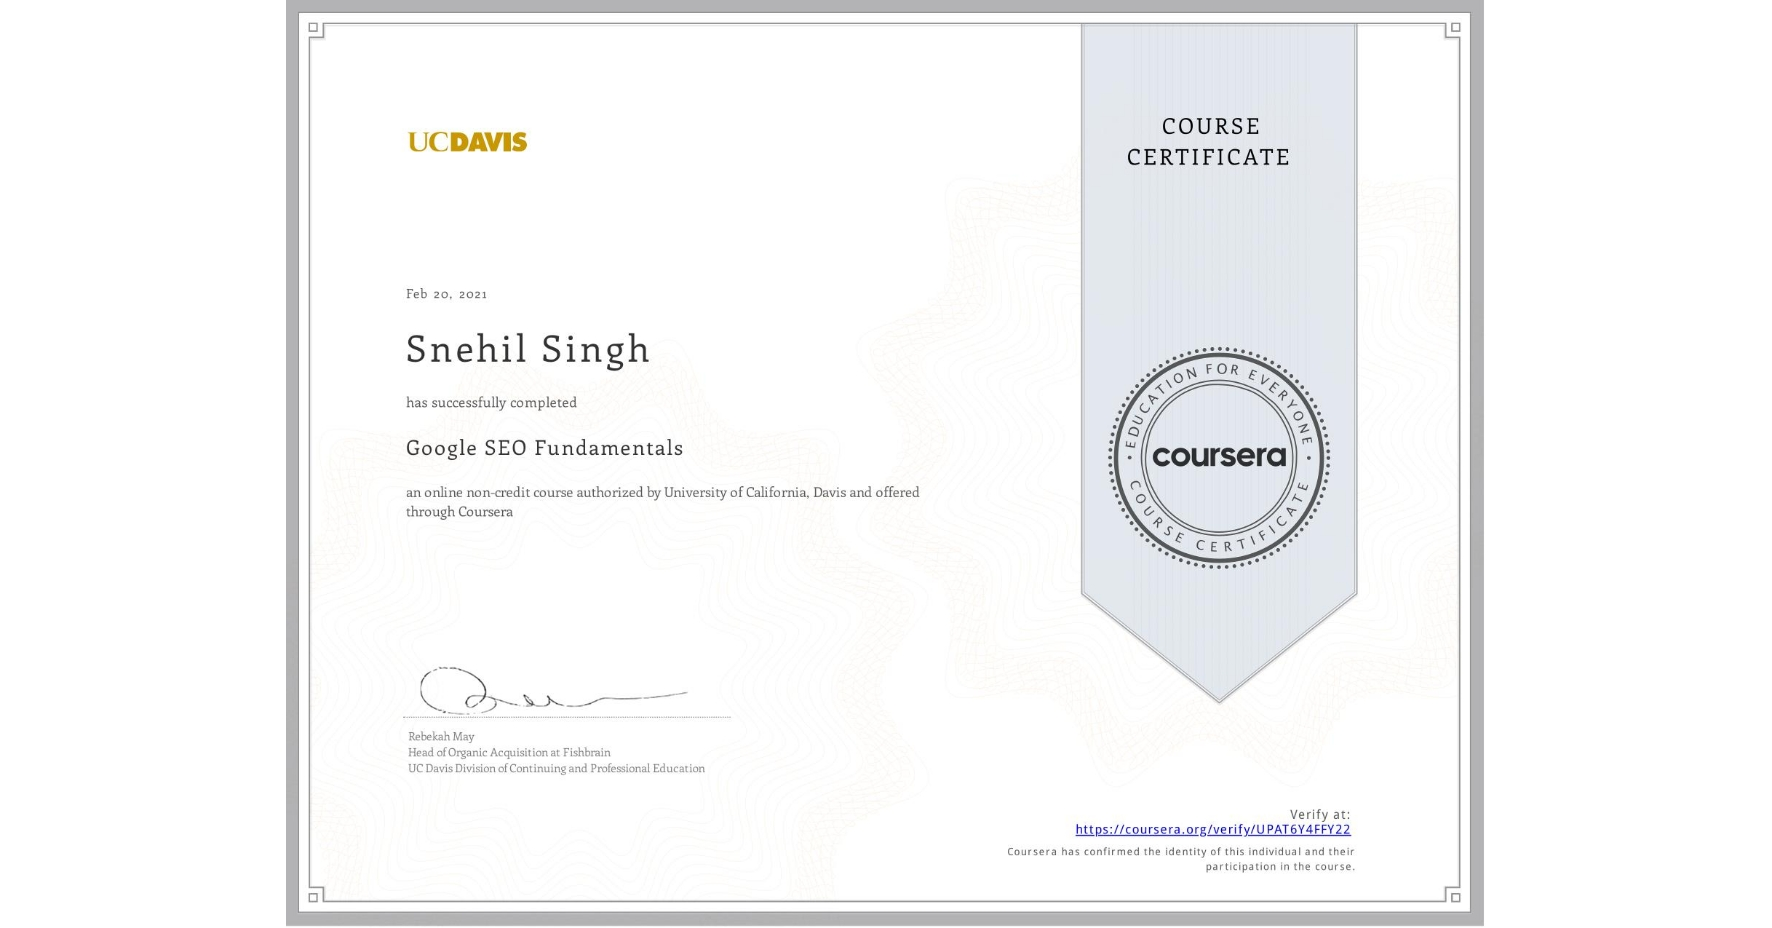 View certificate for Snehil Singh, Search Engine Optimization Fundamentals, an online non-credit course authorized by University of California, Davis and offered through Coursera